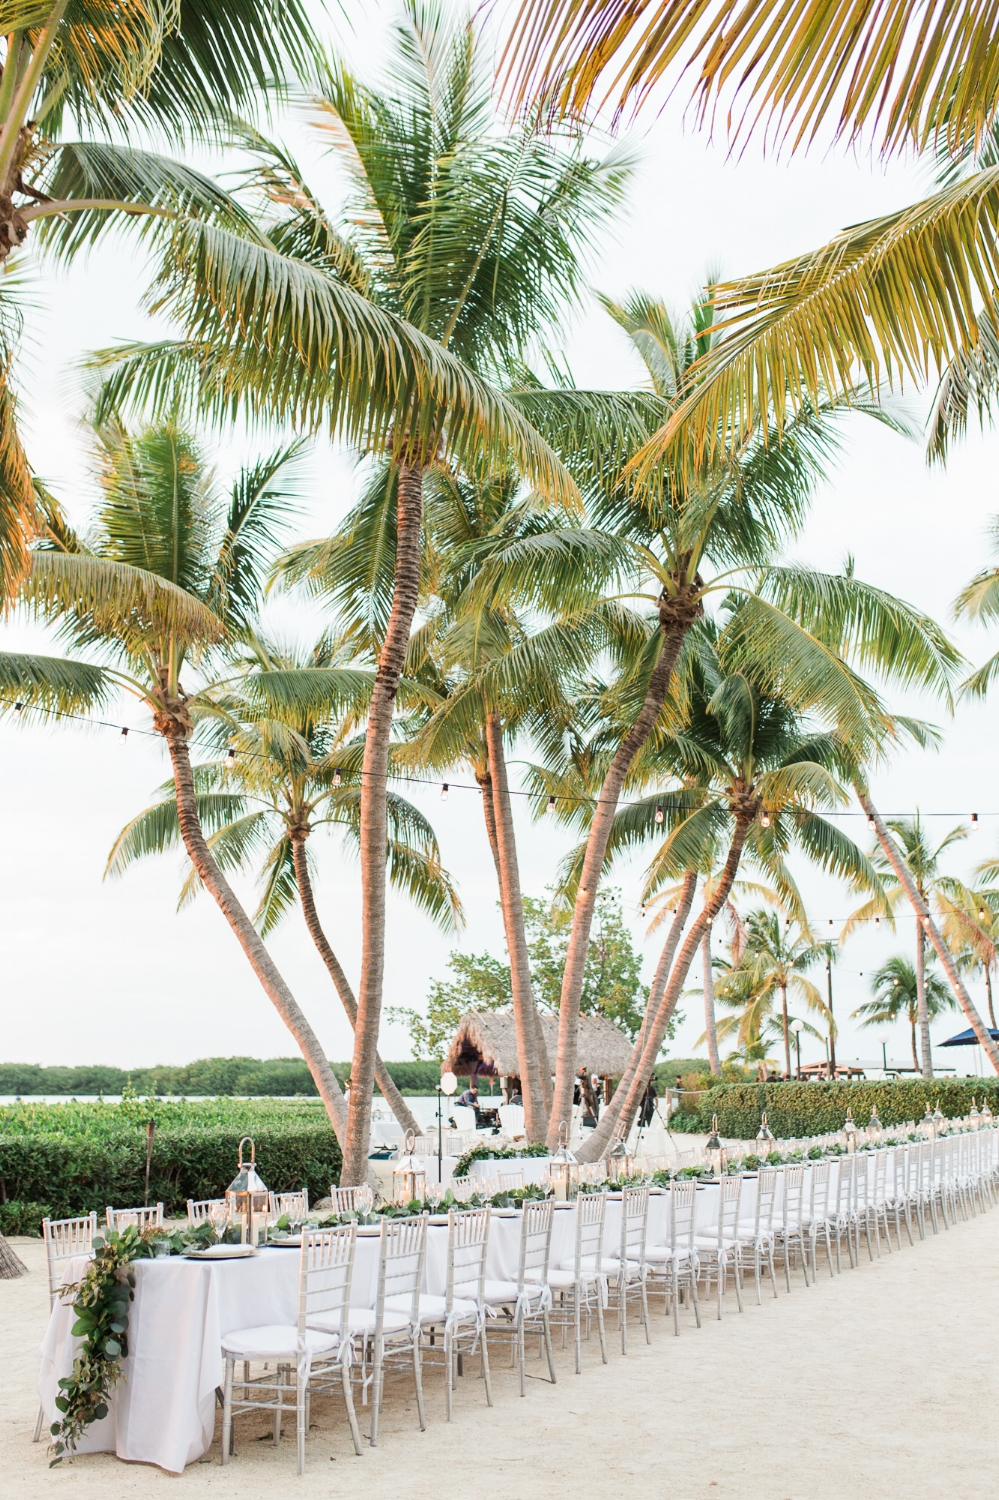 Family style reception table outdoors at Coconut Palm Inn in Tavernier, FL